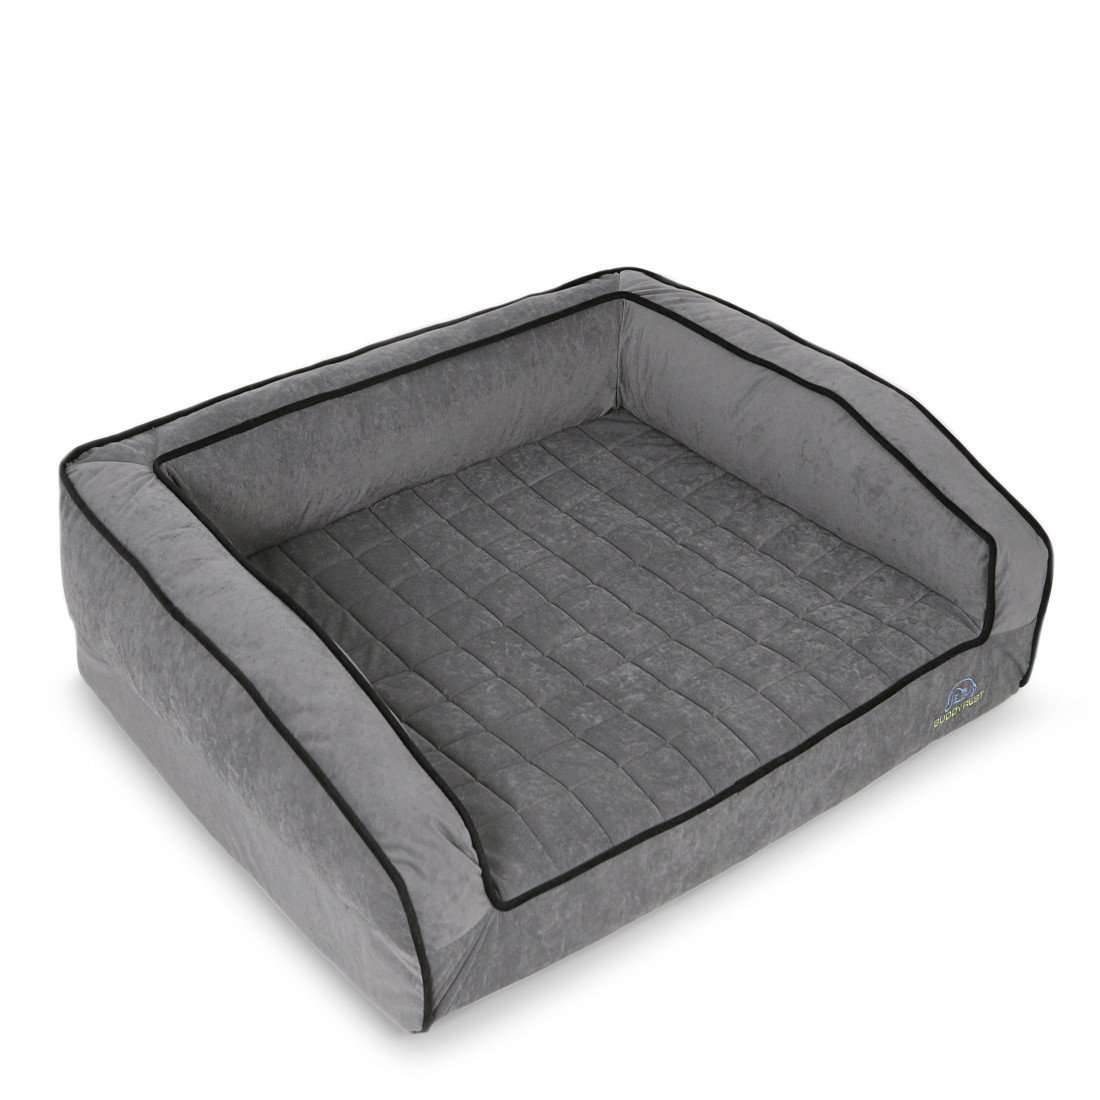 BuddyRest Crown Supreme Orthopedic Dog Bed